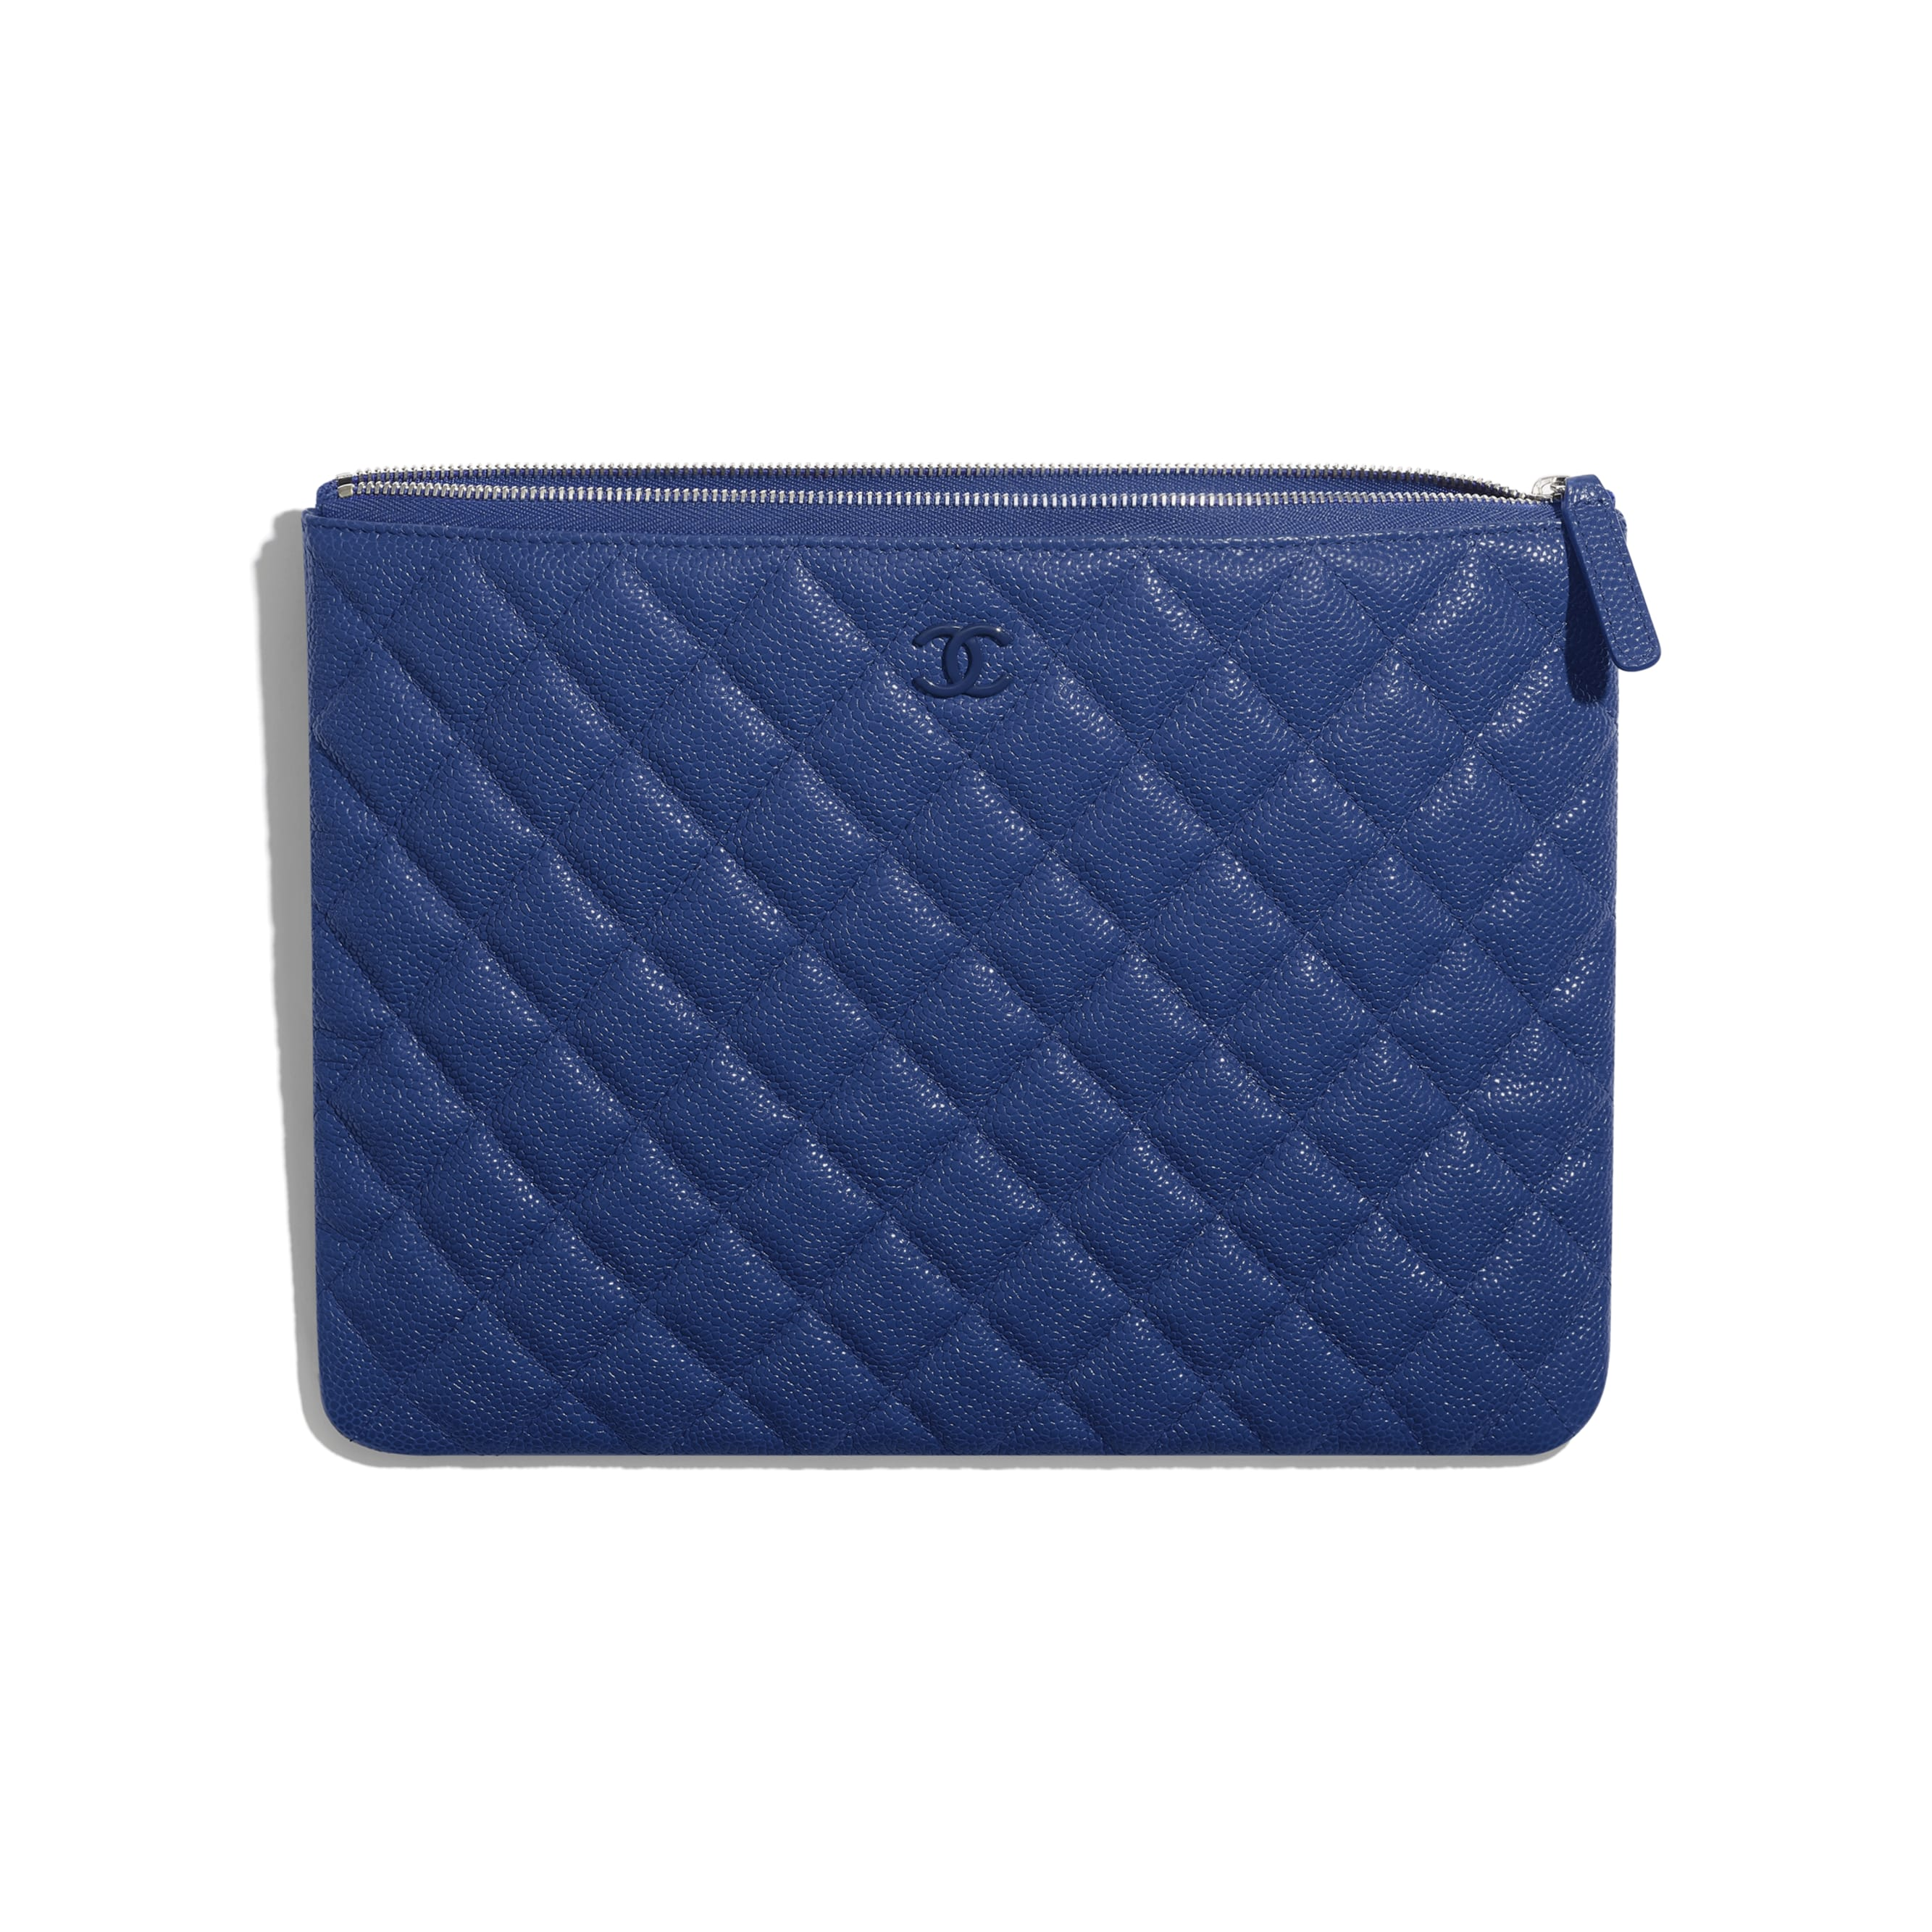 Pouch - Dark Blue - Grained Calfskin & Lacquered Metal - CHANEL - Other view - see standard sized version